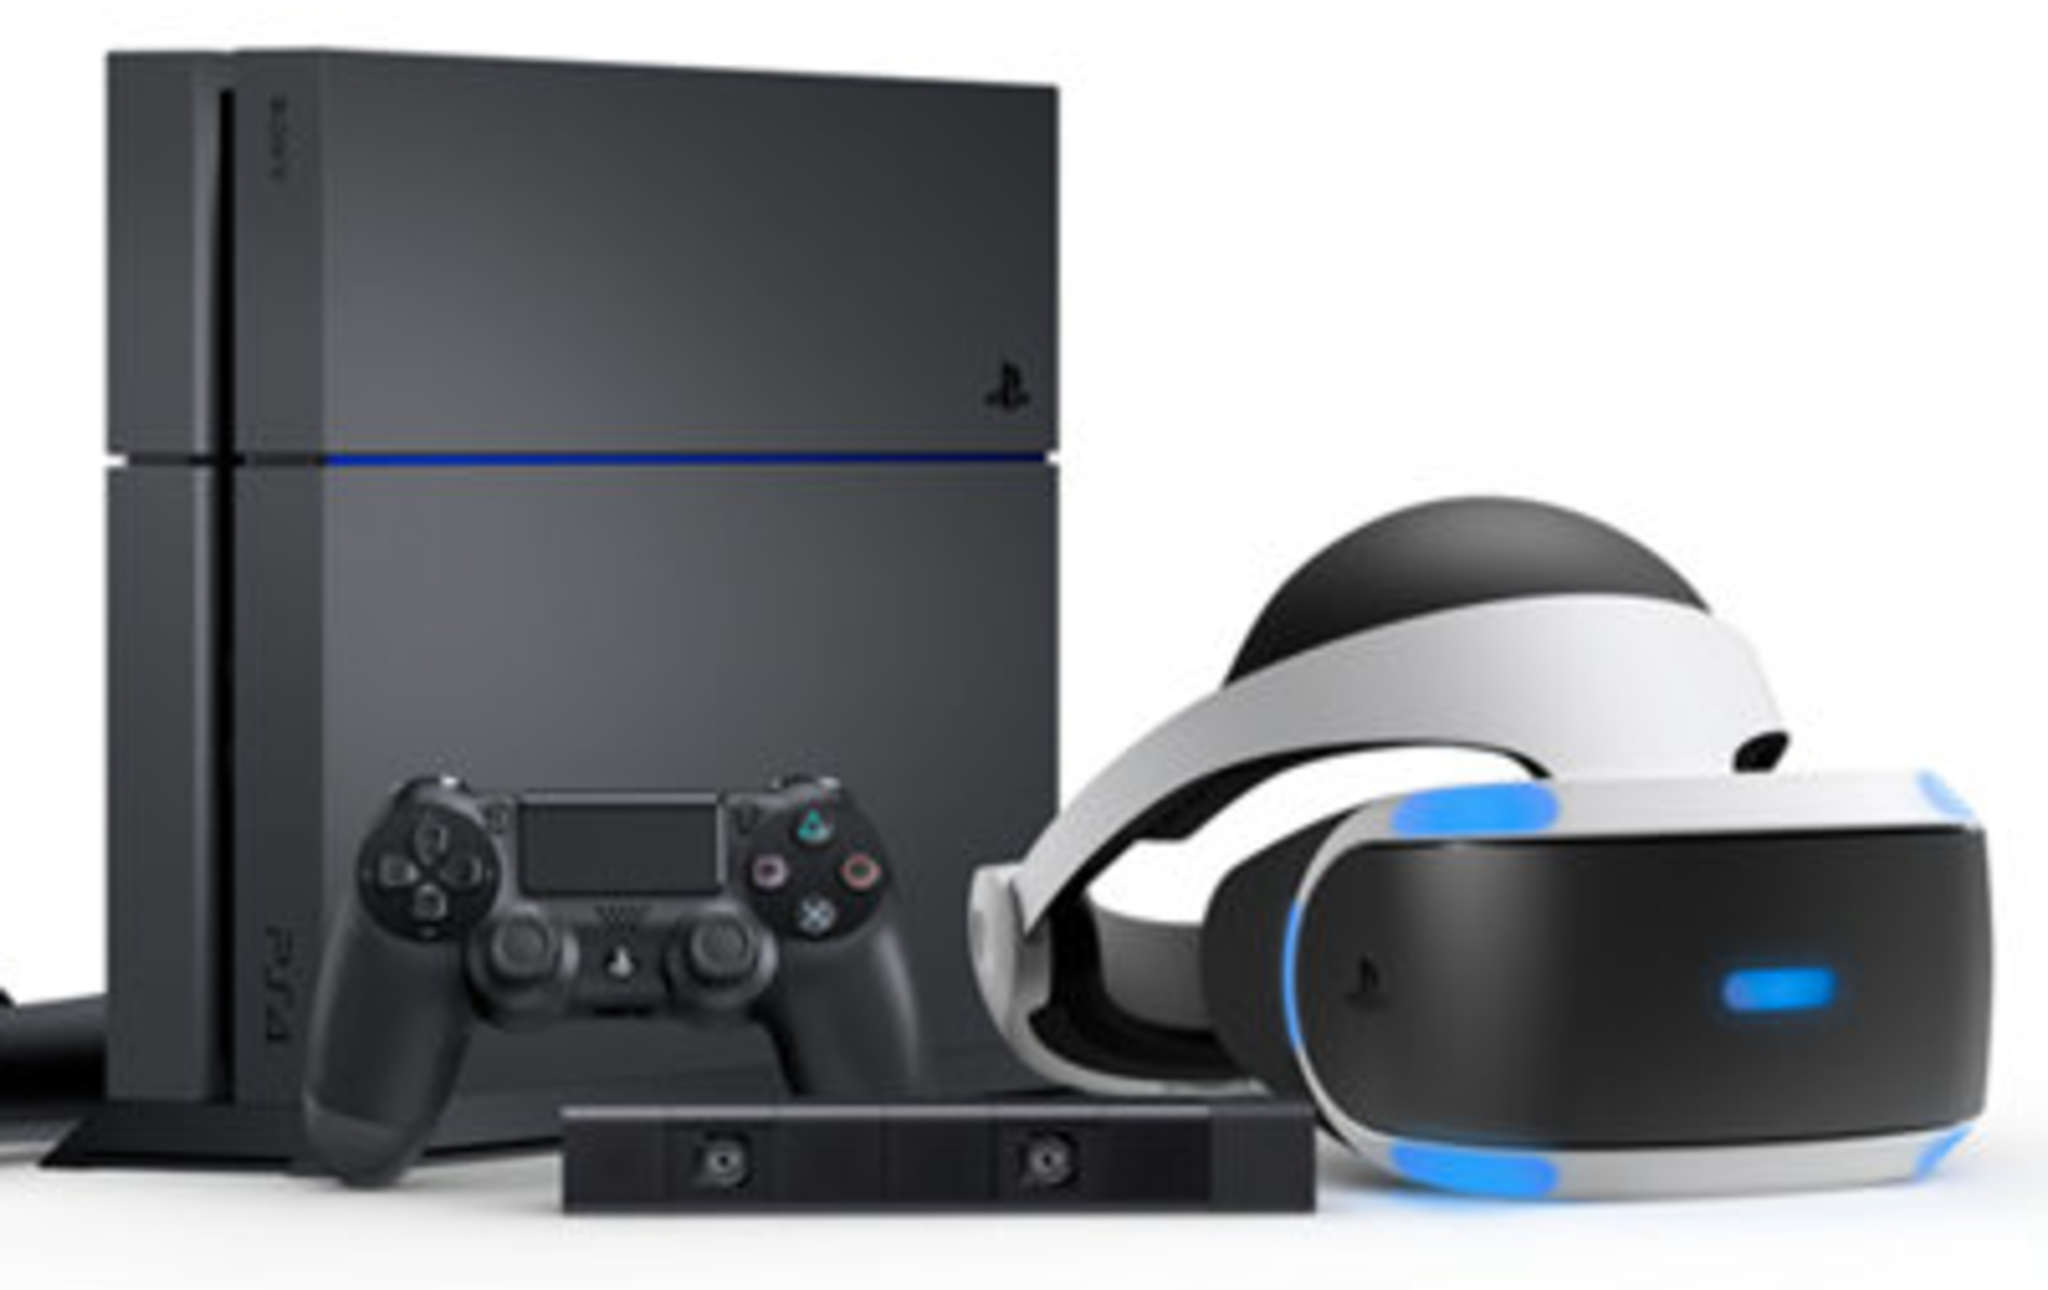 If you´re starting from scratch, expect to spend about $800 for a fully outfitted PlayStation virtual reality set-up, including the PlayStation 4 console and the controllers you´ll need.